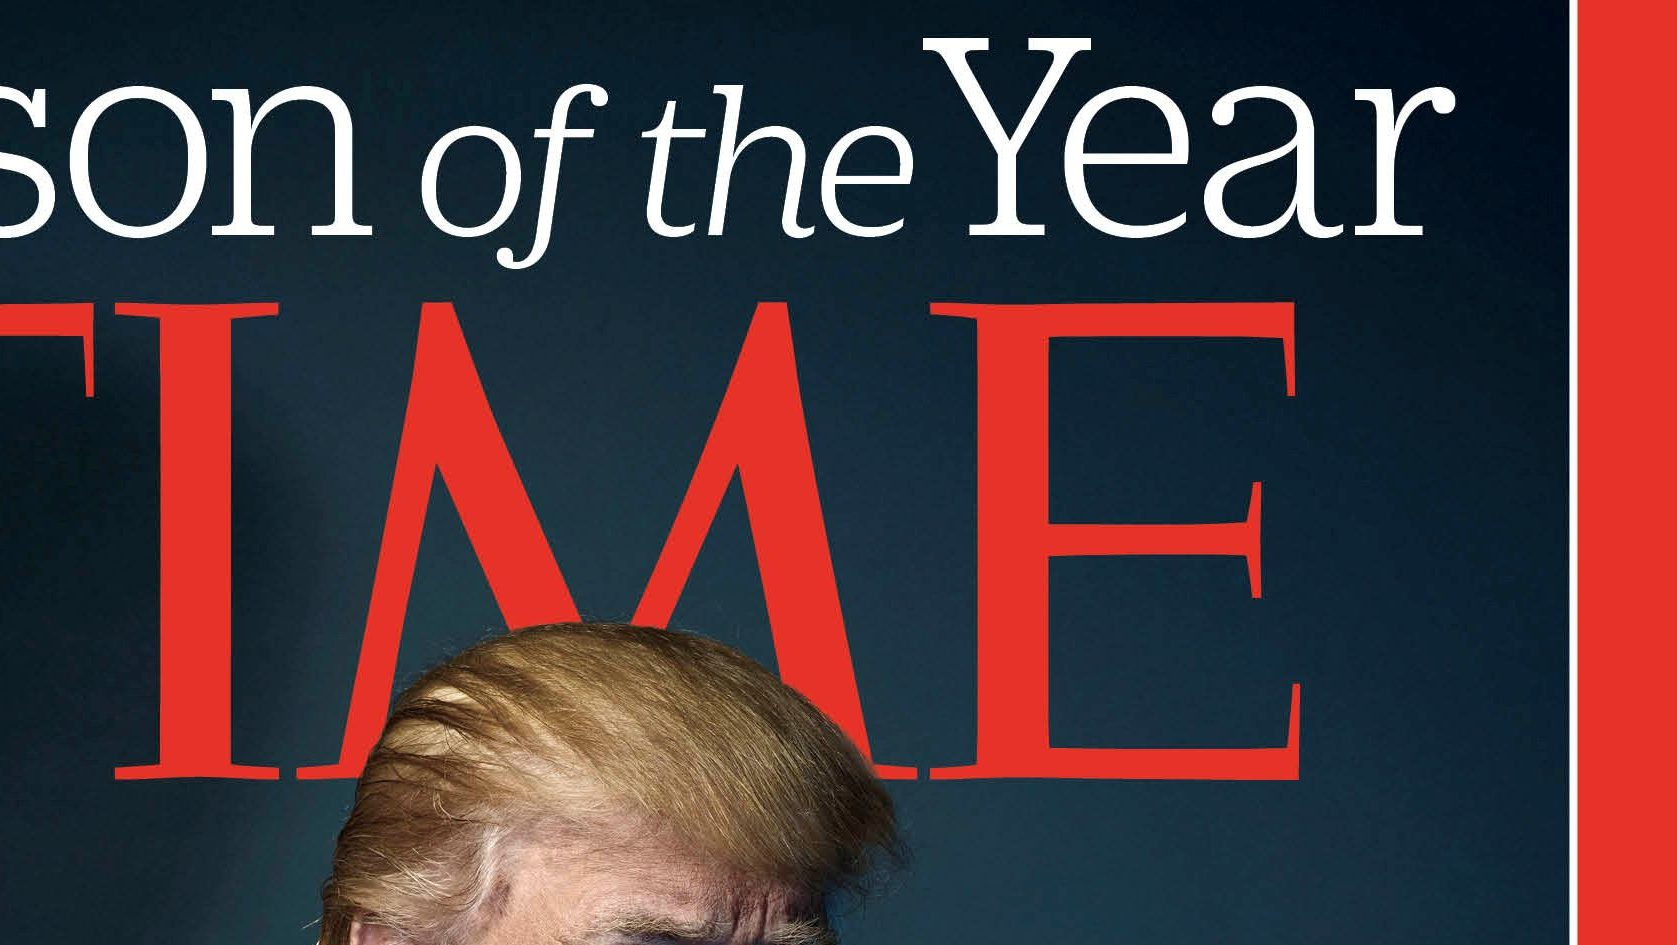 U.S. President-elect Donald Trump poses for photographer Nadav Kander for the cover of Time Magazine after being named its person of the year, in a picture provided by the publication in New York December 7, 2016.